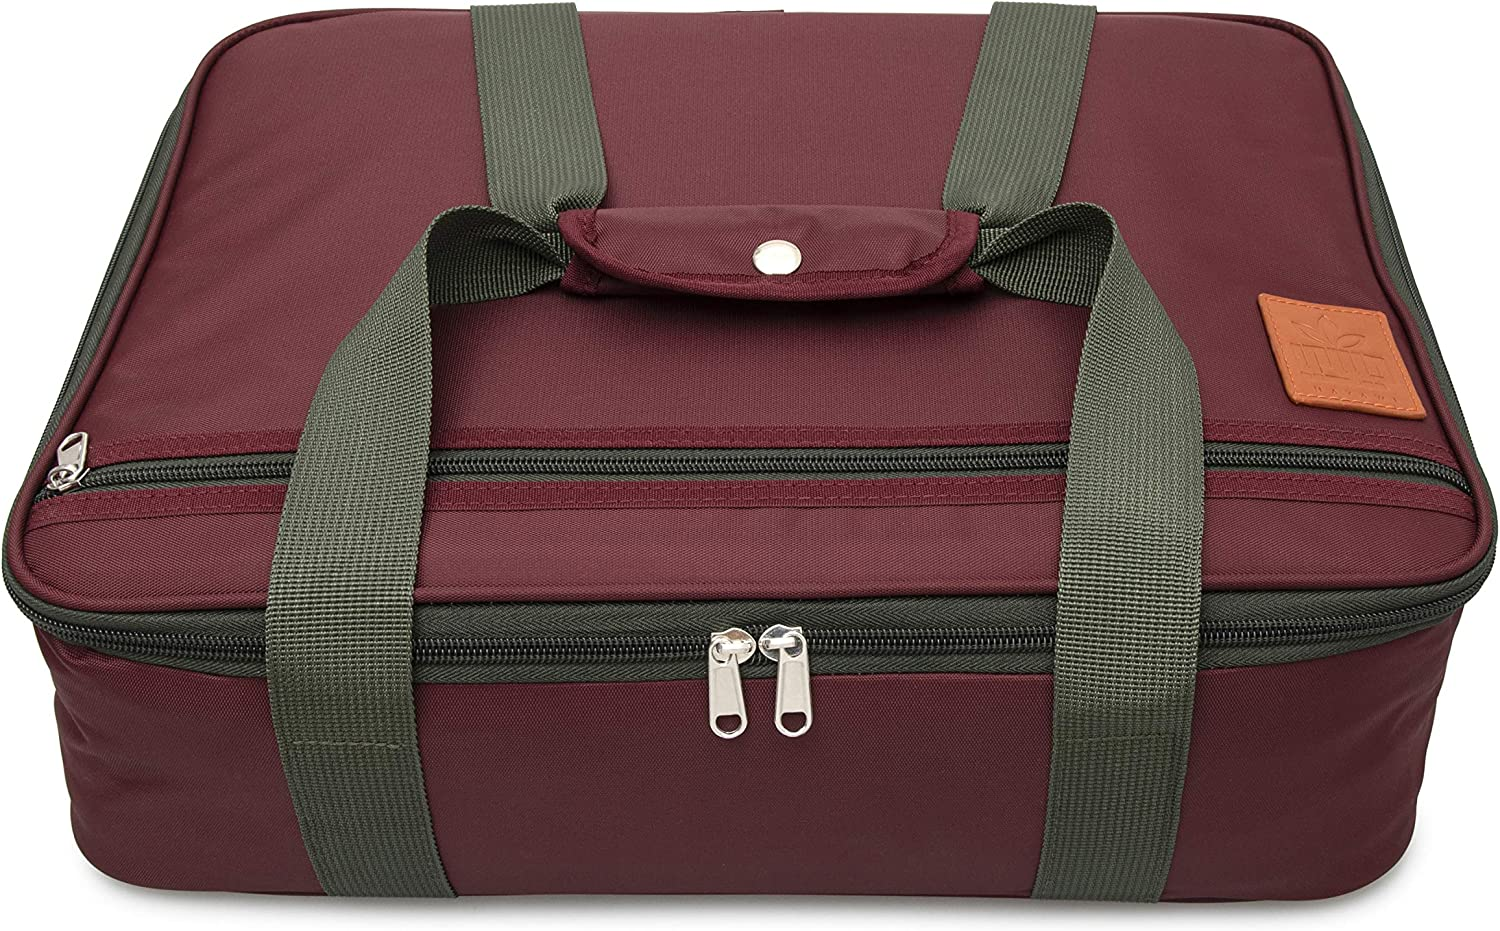 "Hayawi Insulated Casserole Carrier for Hot or Cold Food, Perfect Lasagna Lugger for Potlucks, Picnics, Cookouts, Fits 9"" x 13"" Baking Dish, Burgundy"